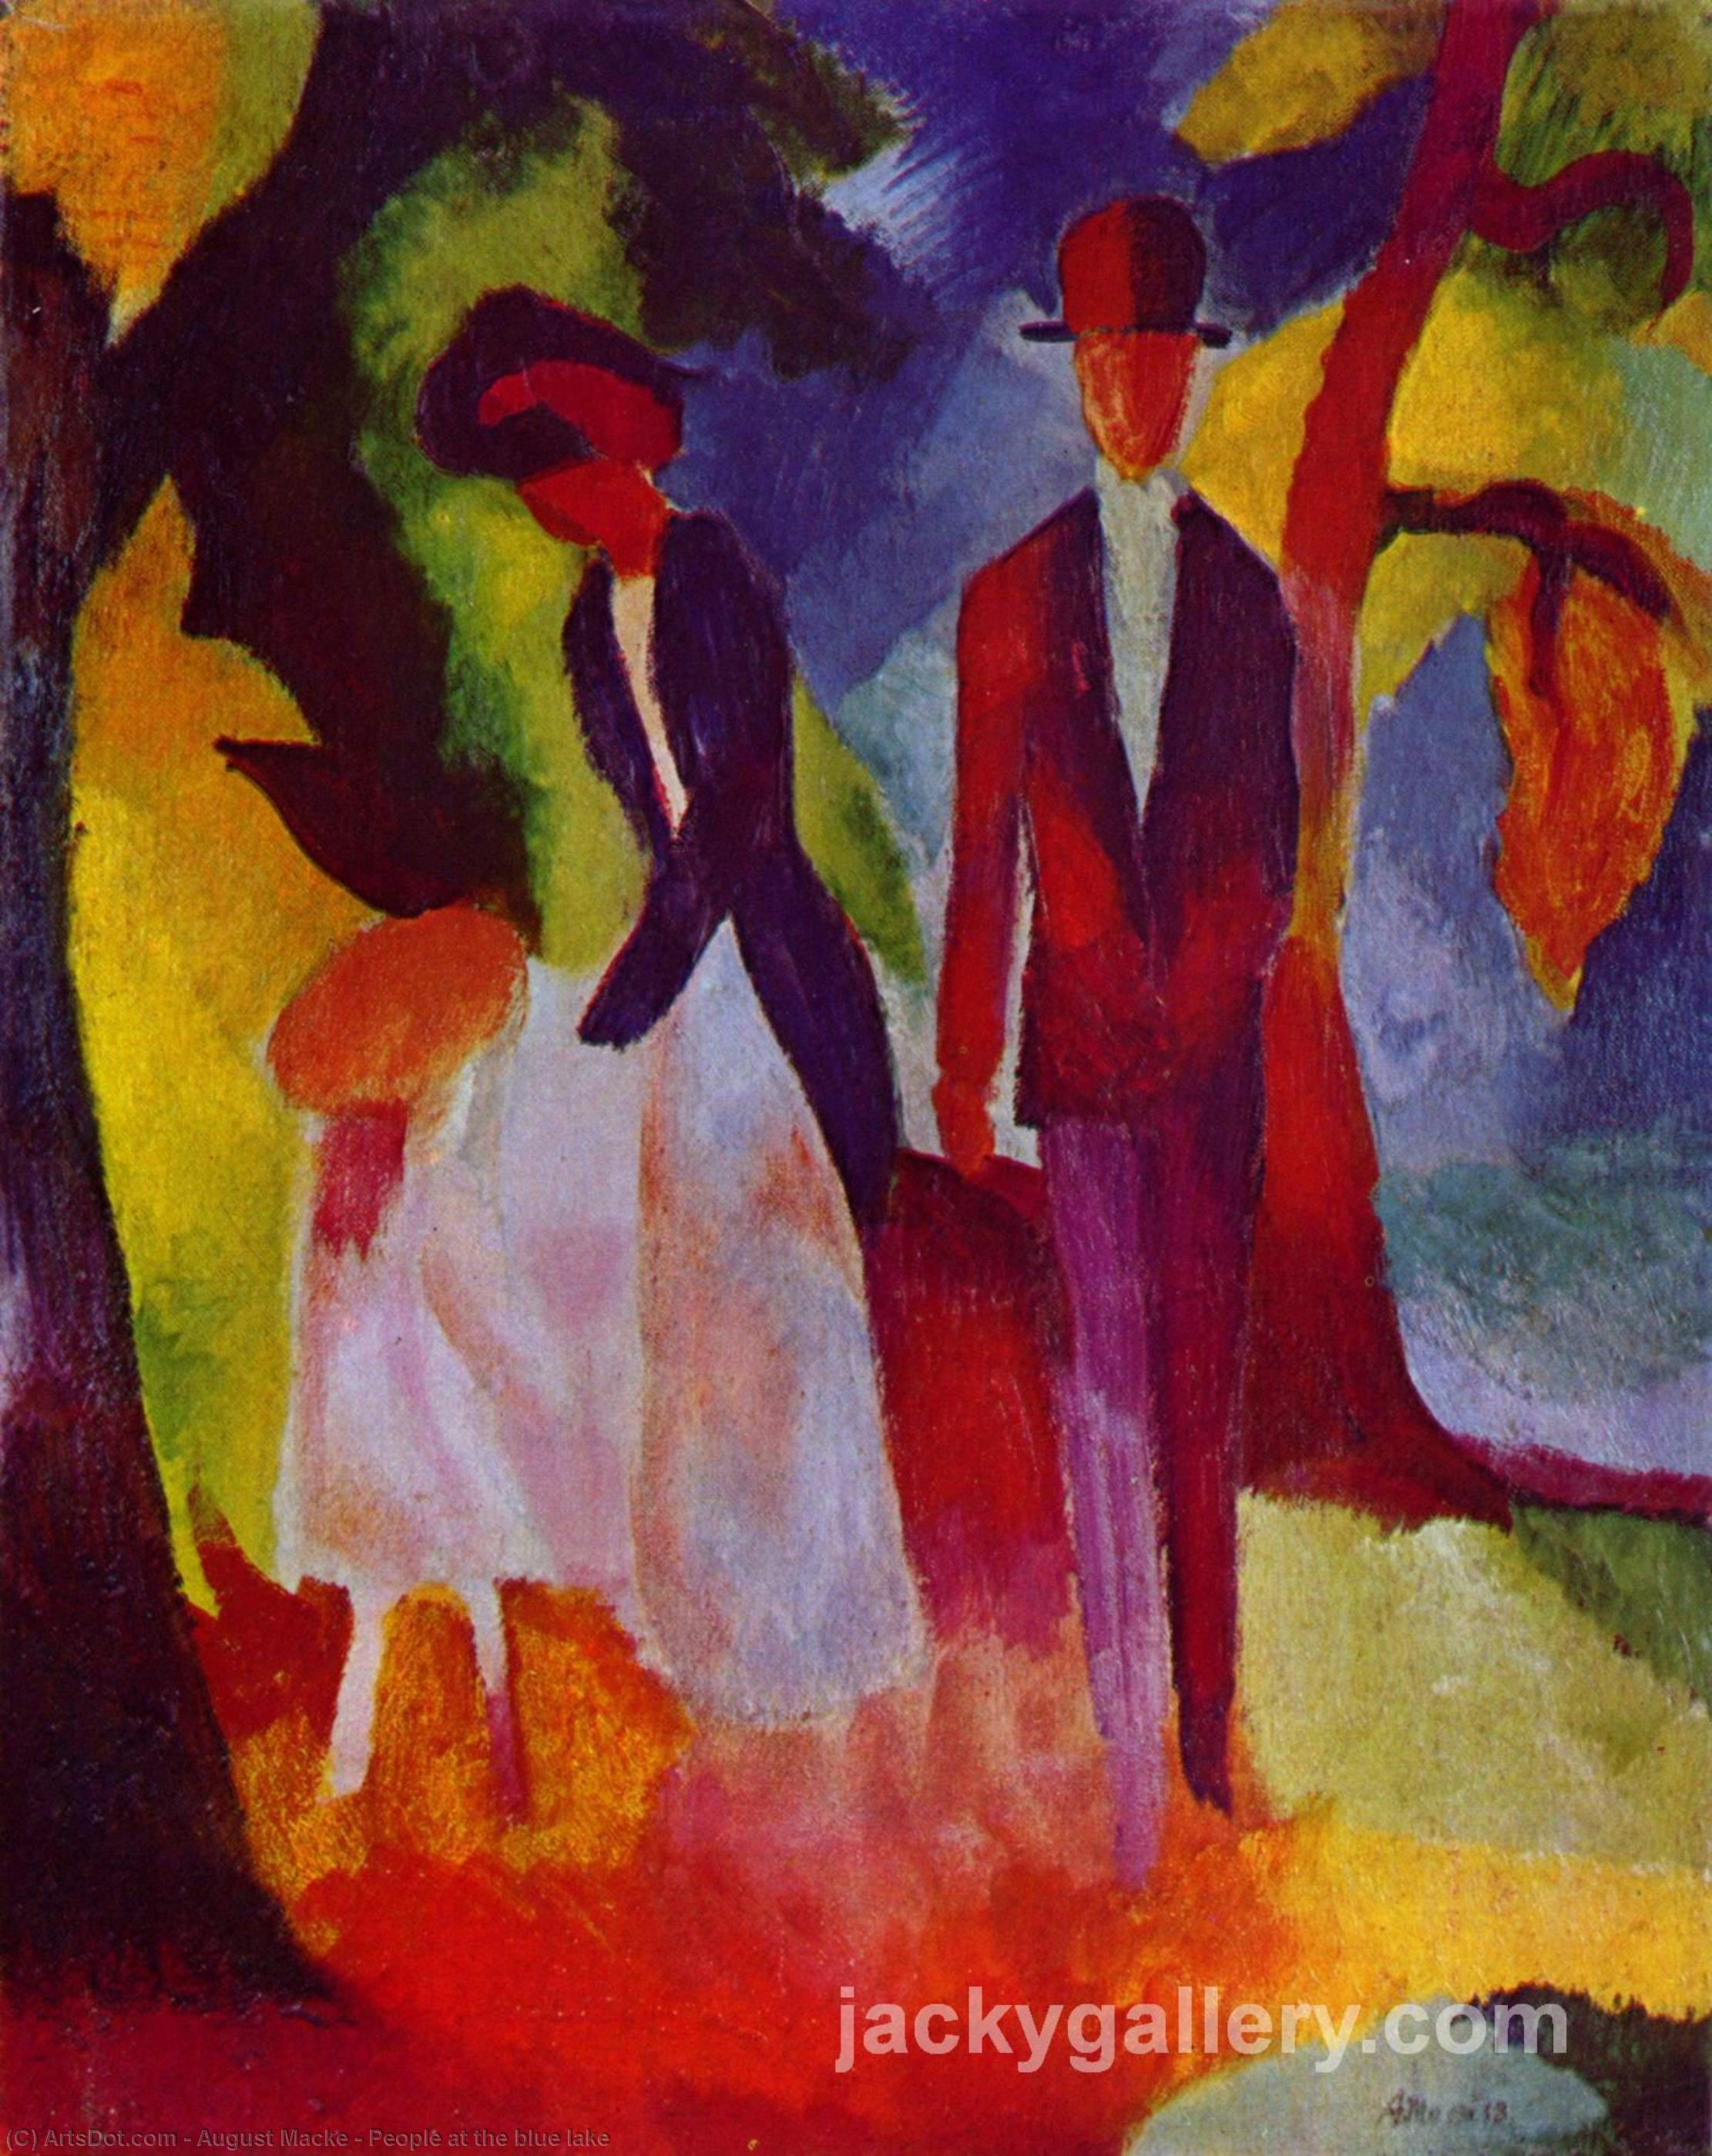 Wikioo.org - The Encyclopedia of Fine Arts - Painting, Artwork by August Macke - People at the bluelake